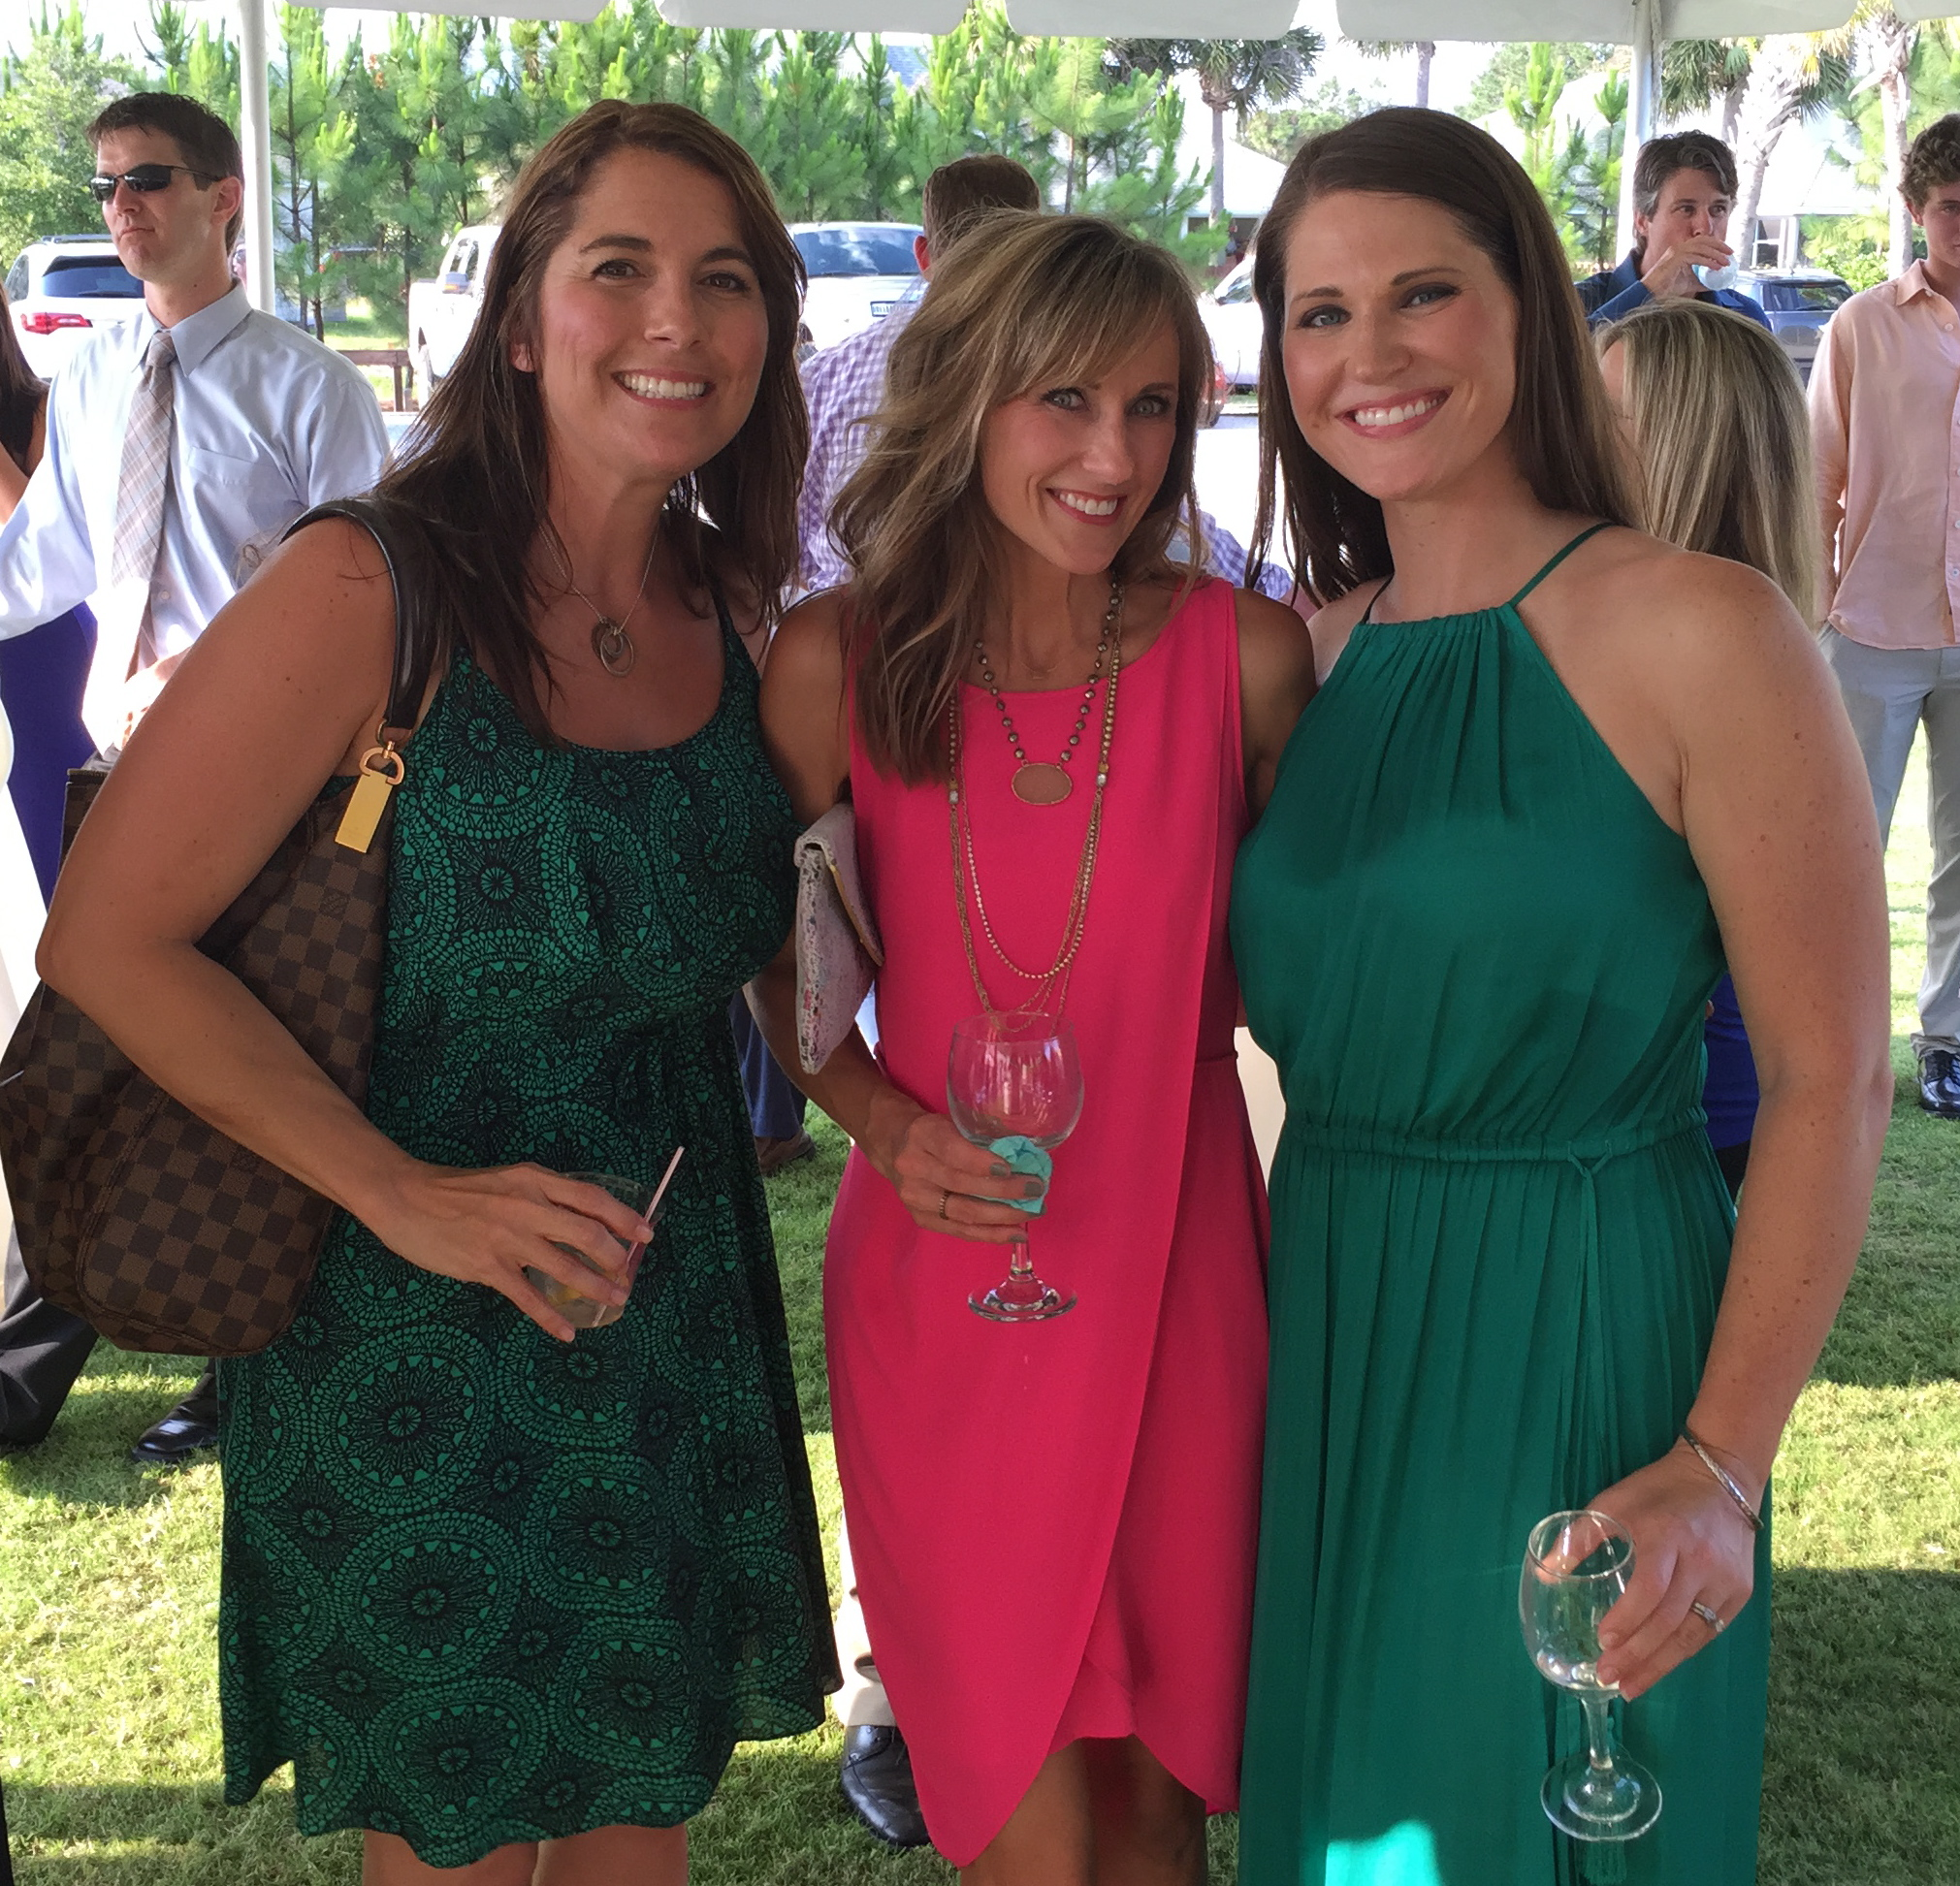 (L to R) Misty Parenzan, me & Jennifer Moffatt - my beautiful friends.